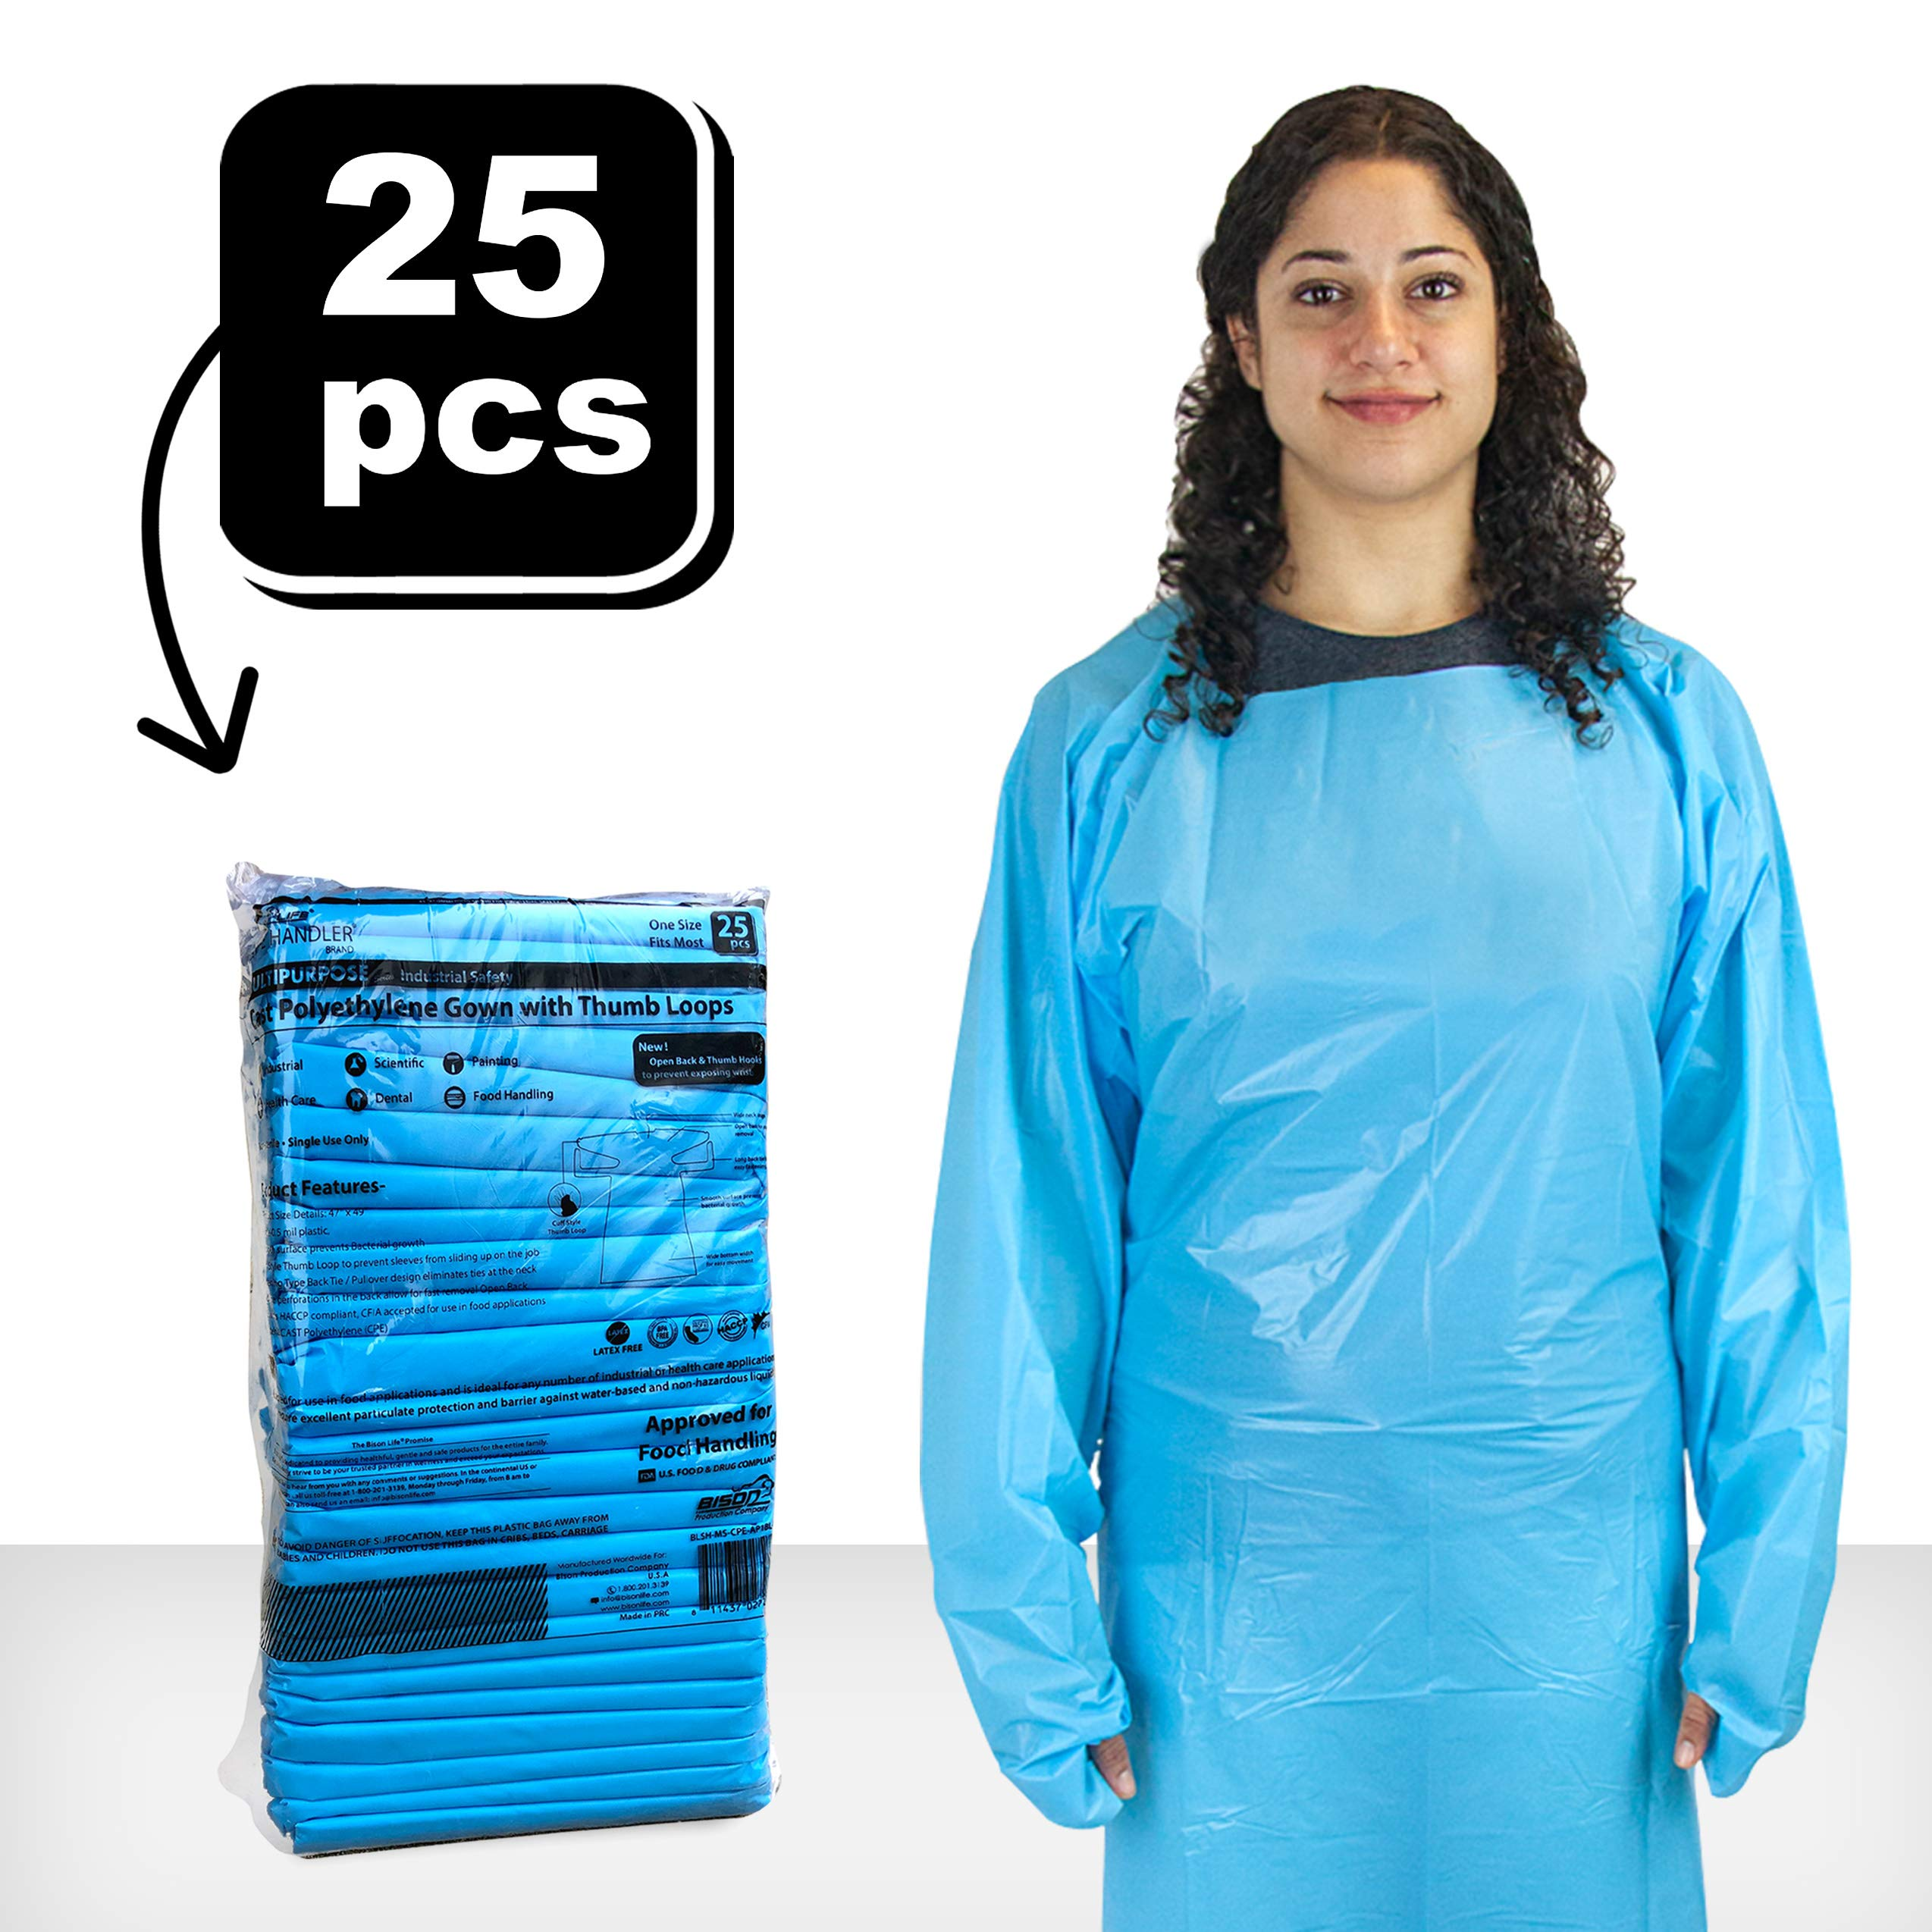 SAFE HANDLER Disposable Sleeve Gown | Open Back with Thumb Loops, 0.5 MIL, Blue, 25 Count